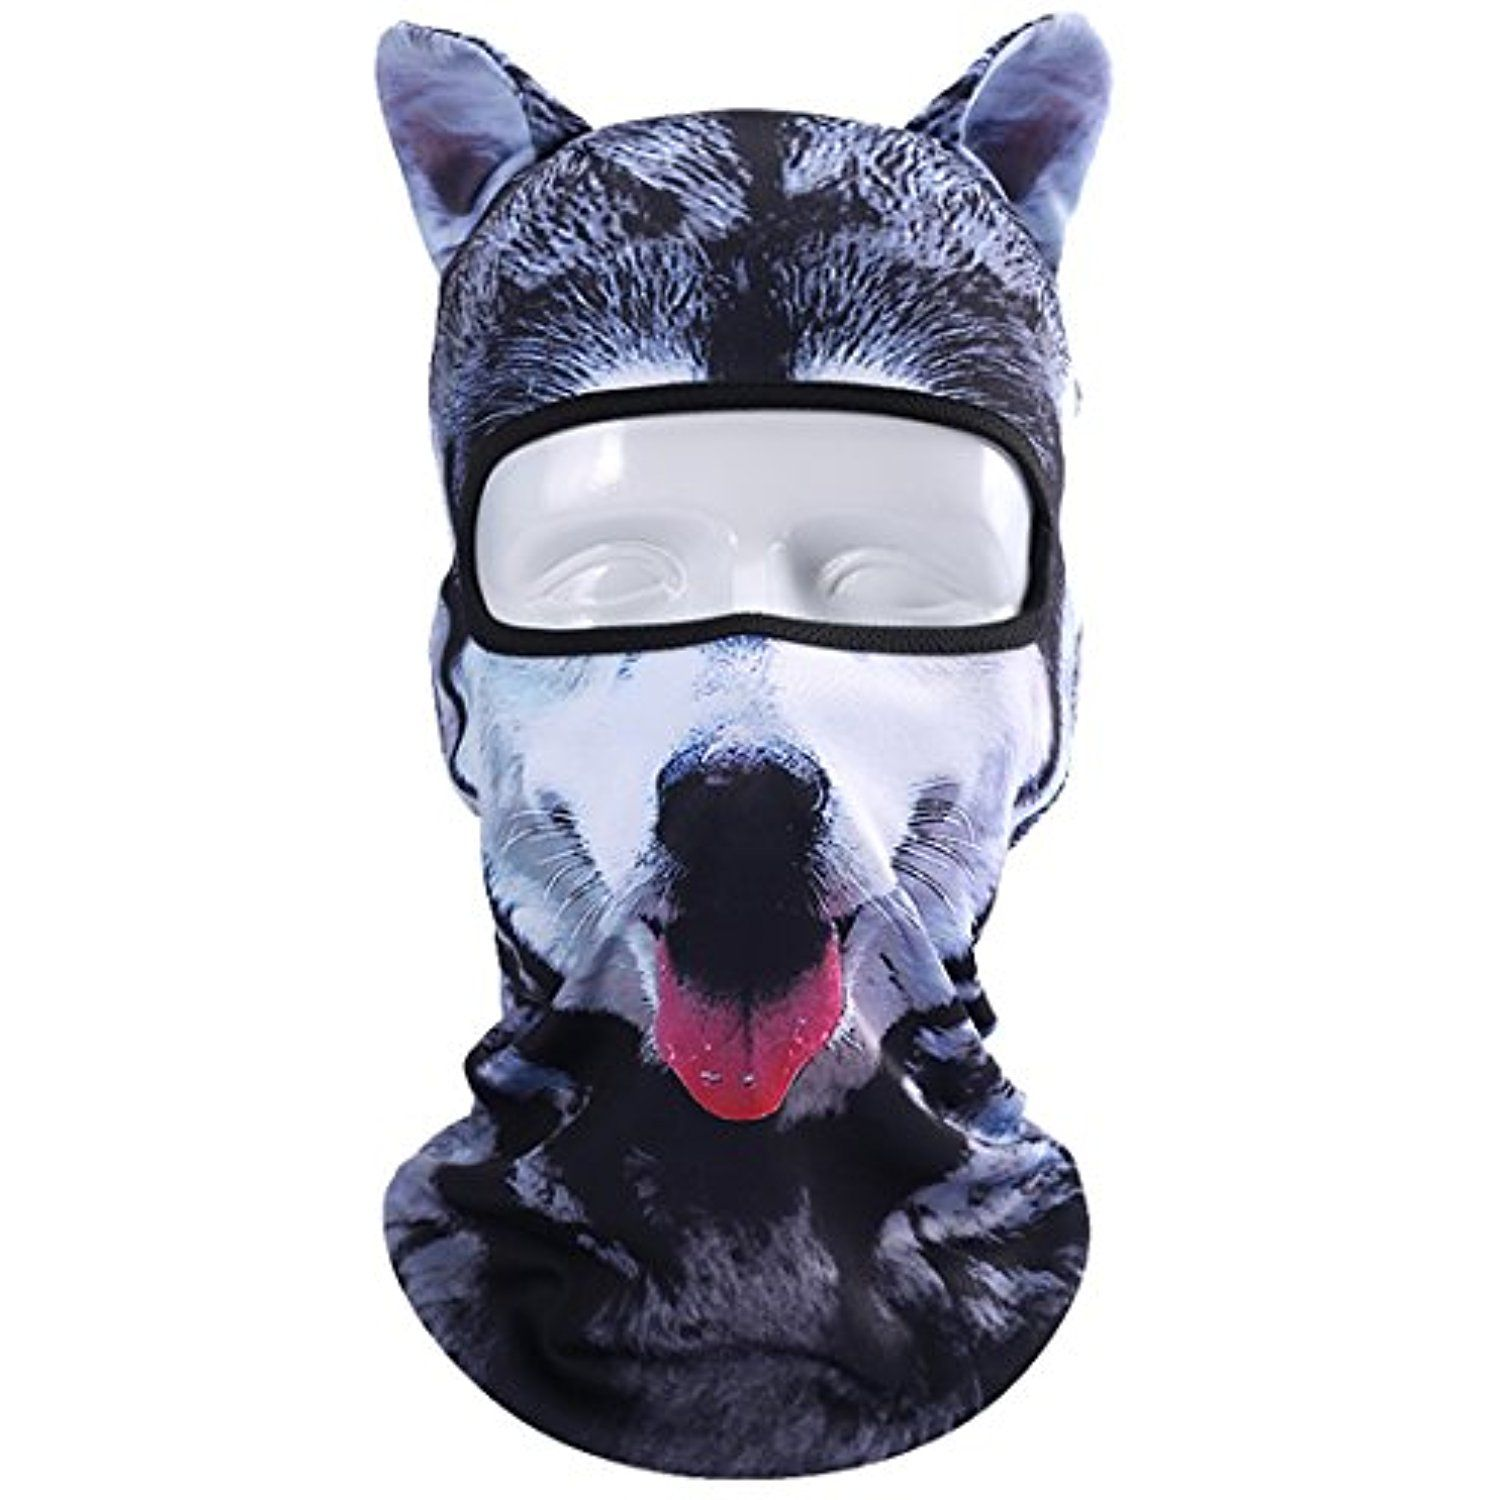 Hi-crazystore Winter Animal Ski Mask Keep Warm Balaclava Neck Protect Face  Mask     Be sure to check out this awesome product. (This is an affiliate  link)   ... 9204e0b35